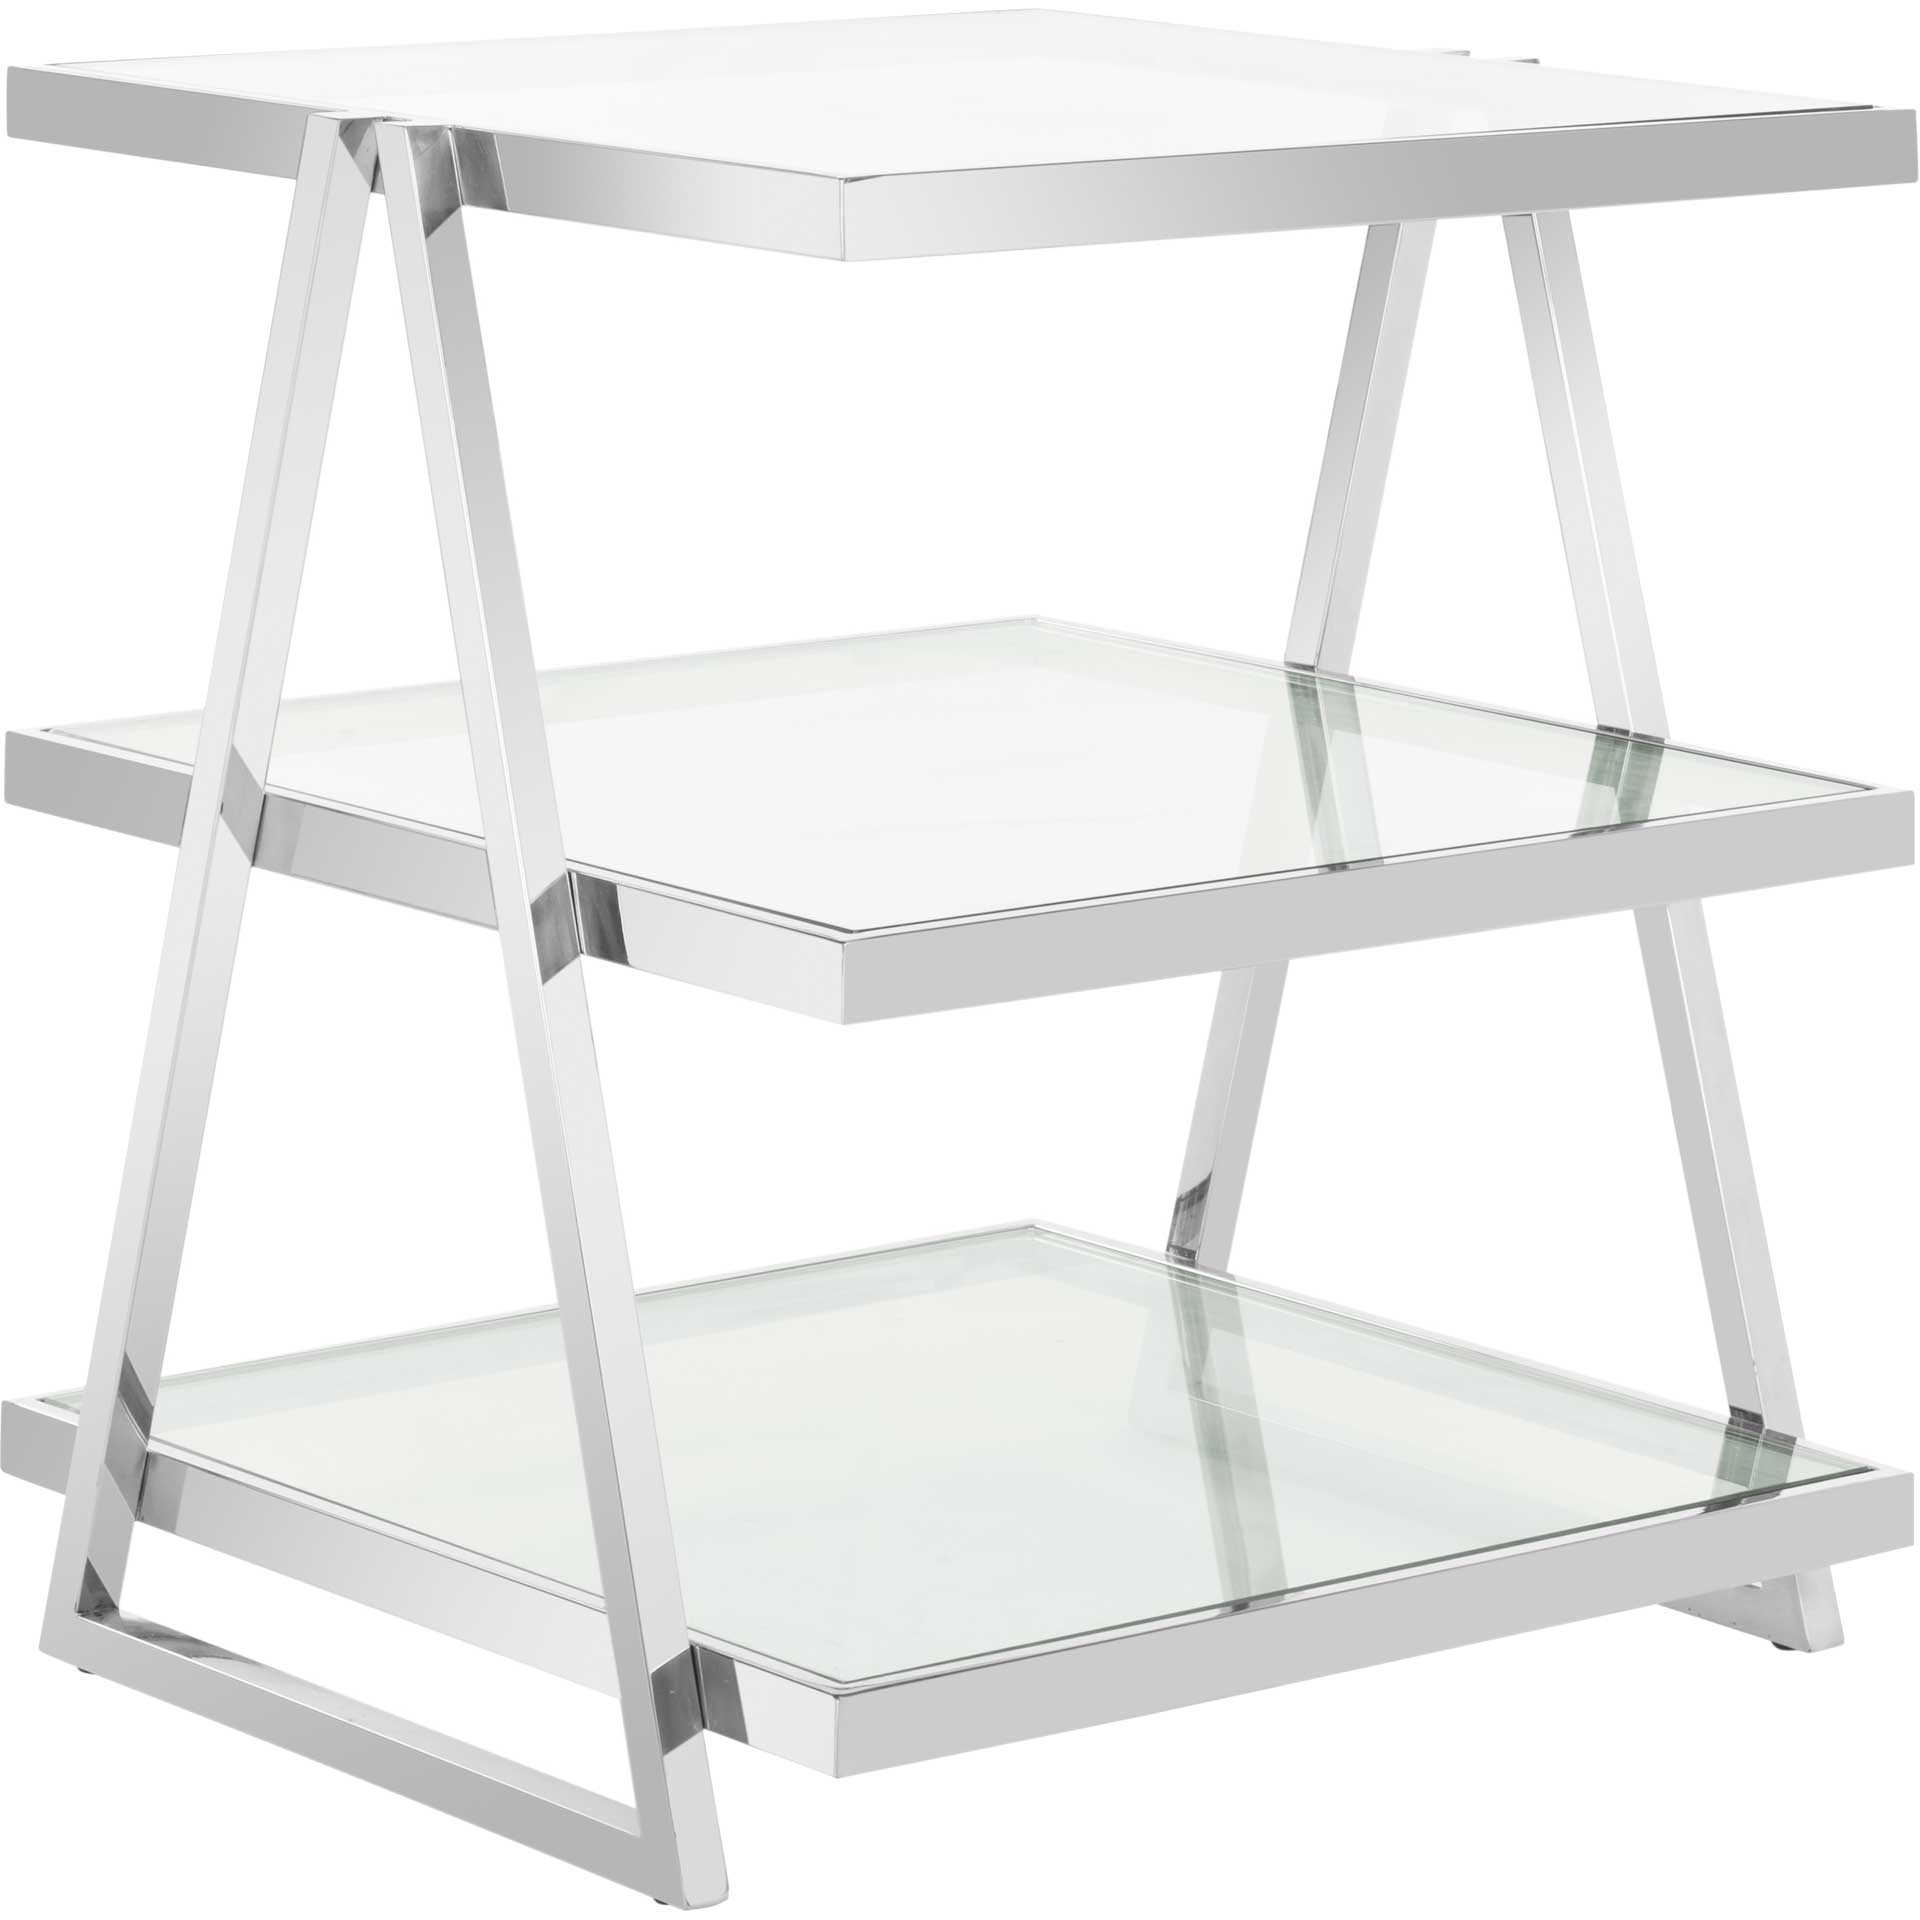 Strive 3-Tier Glass End Table Chrome